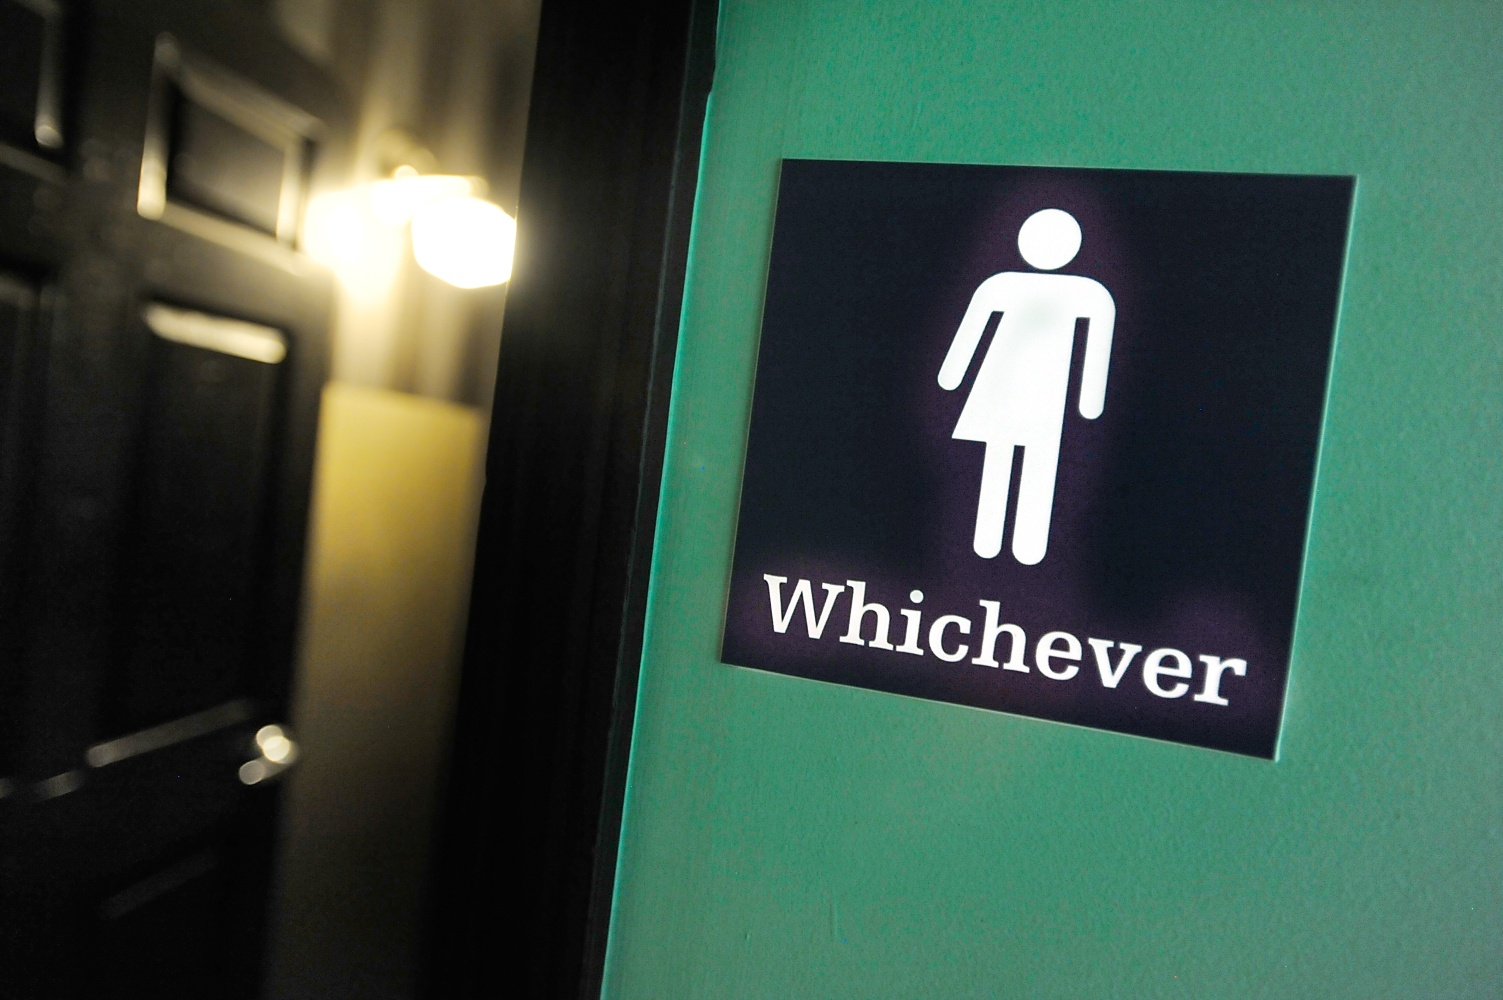 Appeal seeks more relief for transgender North Carolinians